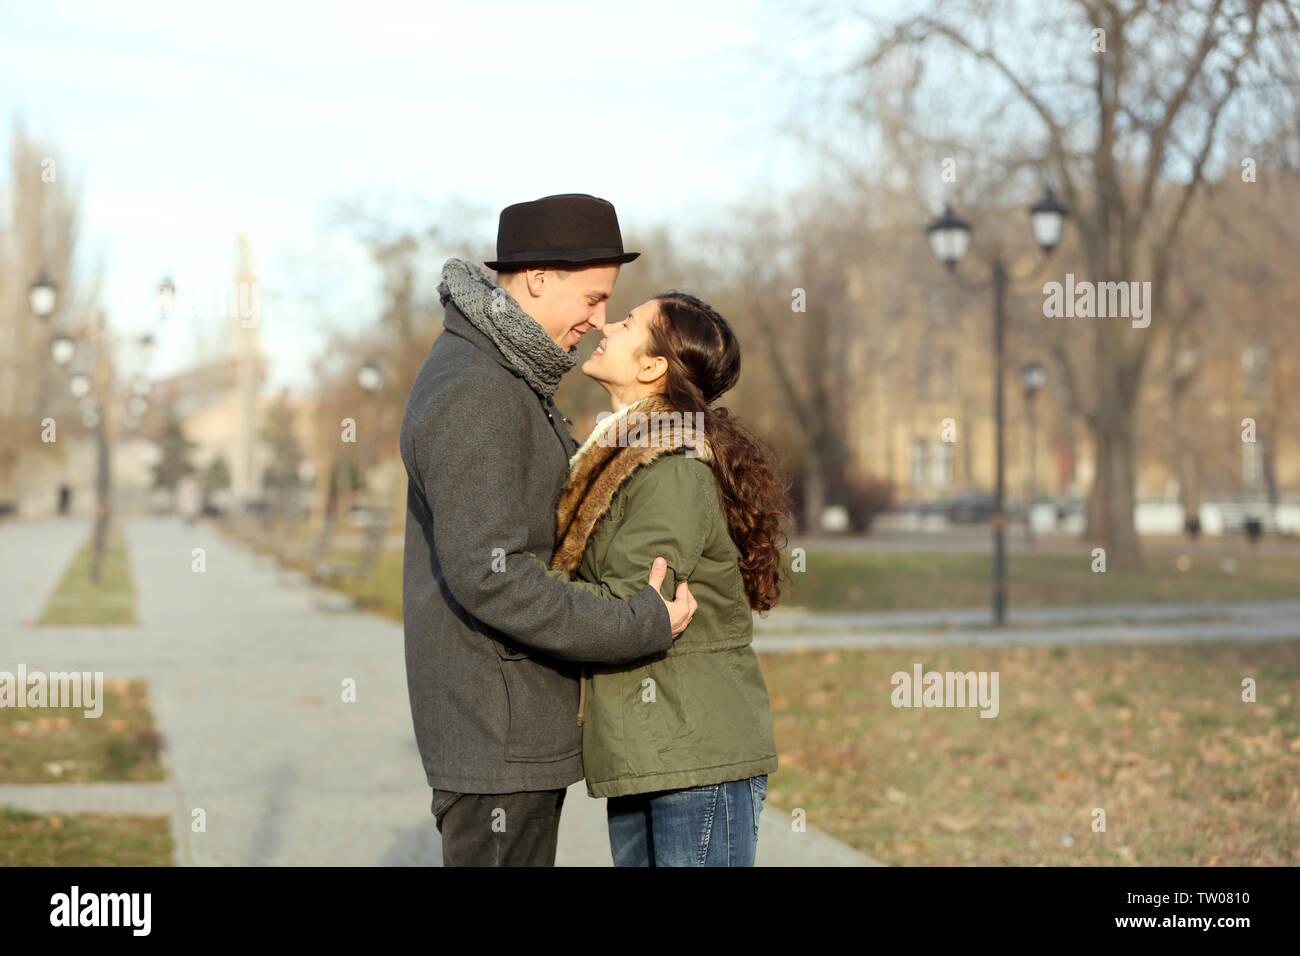 Young couple walking in park - Stock Image